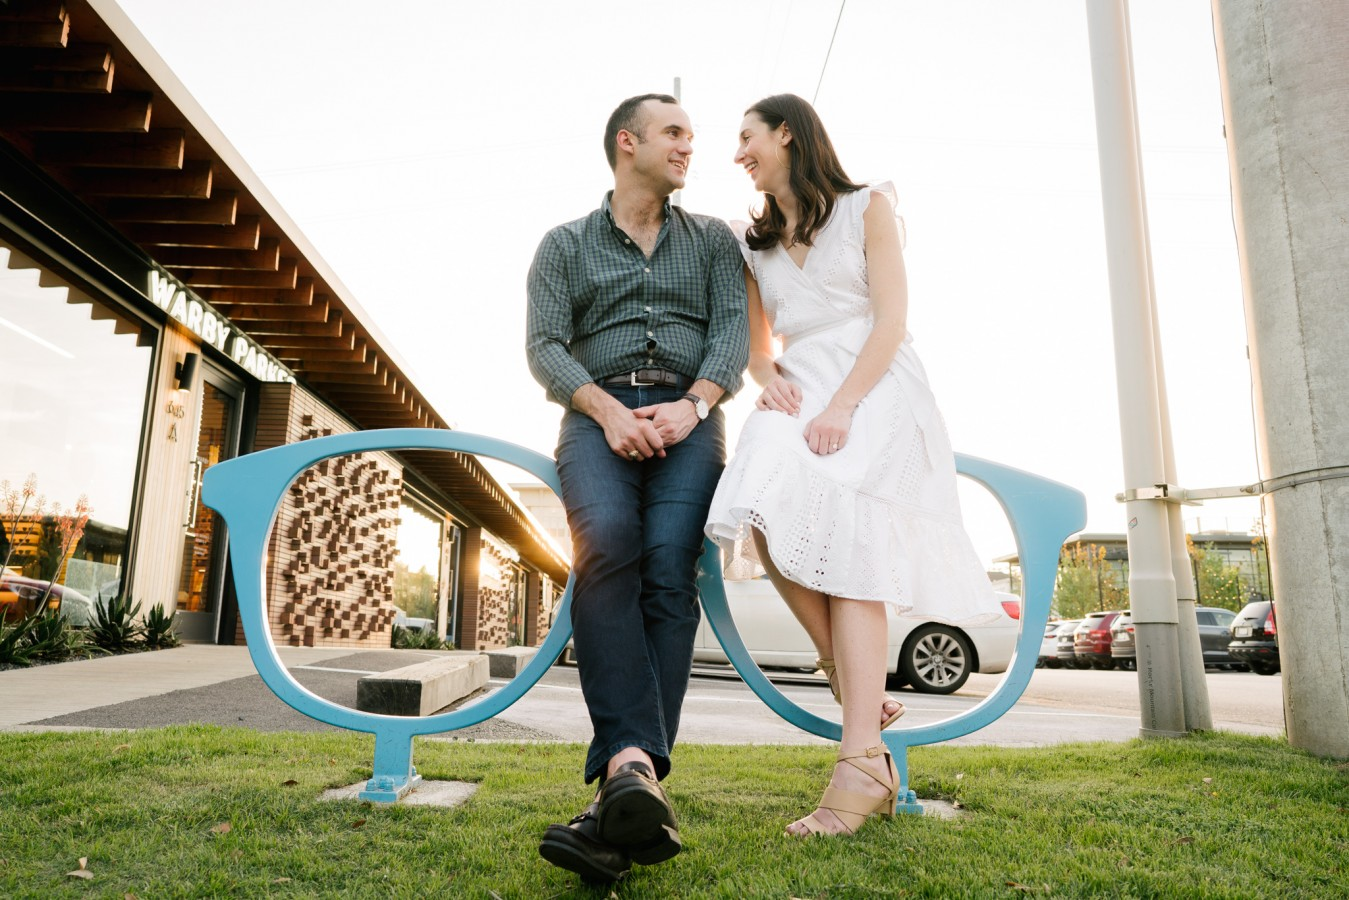 wedding photographer in houston, texas